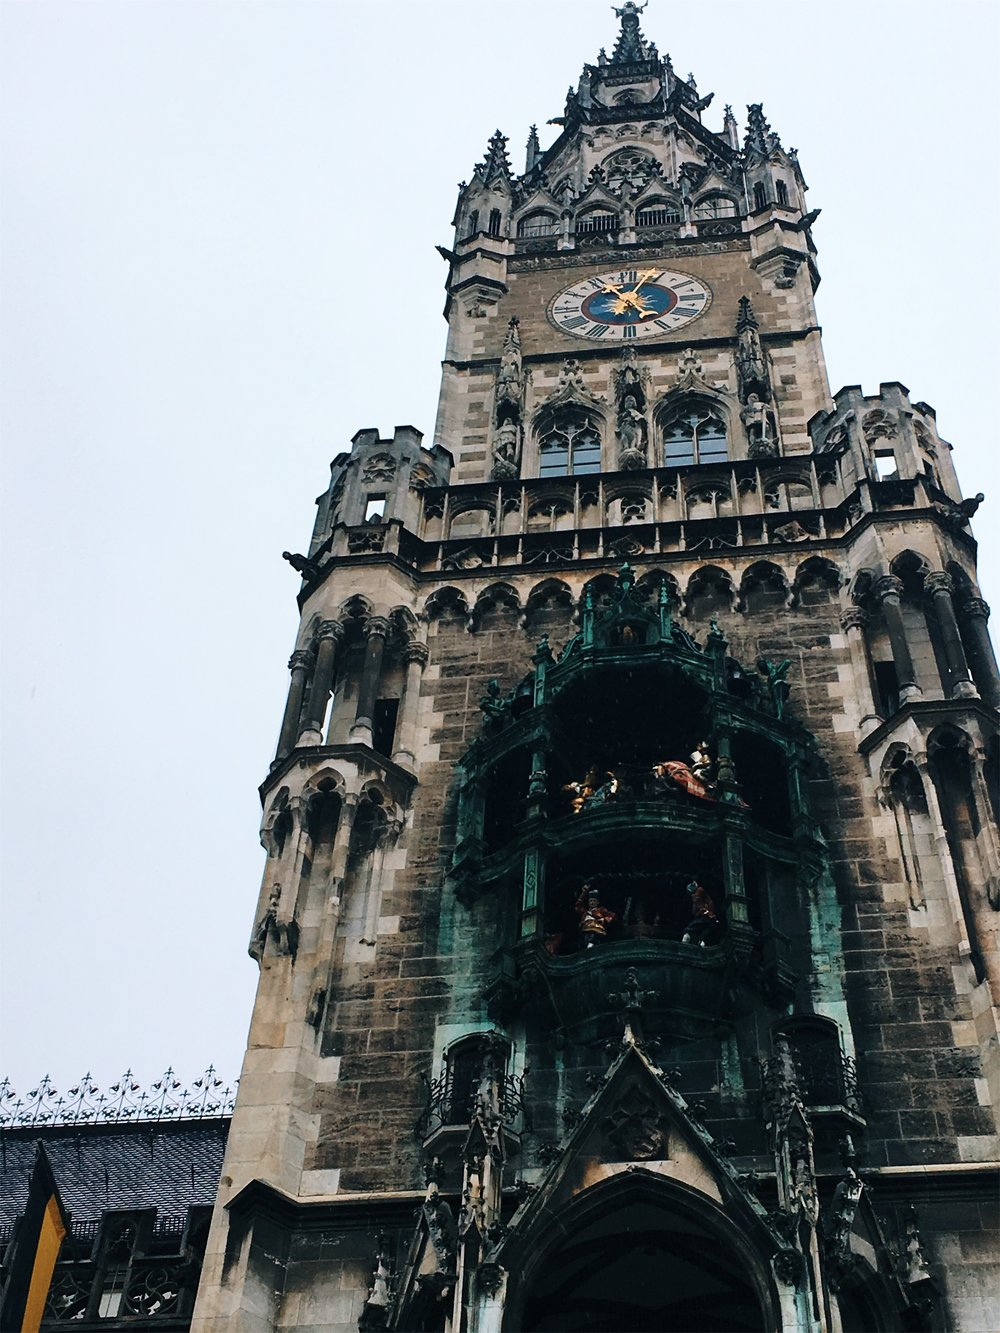 Another must-see in the city center: the  Rathaus-Glockenspiel  at the New Town Hall in Marienplatz, the city's central square. See the figurines dance at 11 a.m. and 5 p.m., and also at noon during summer.